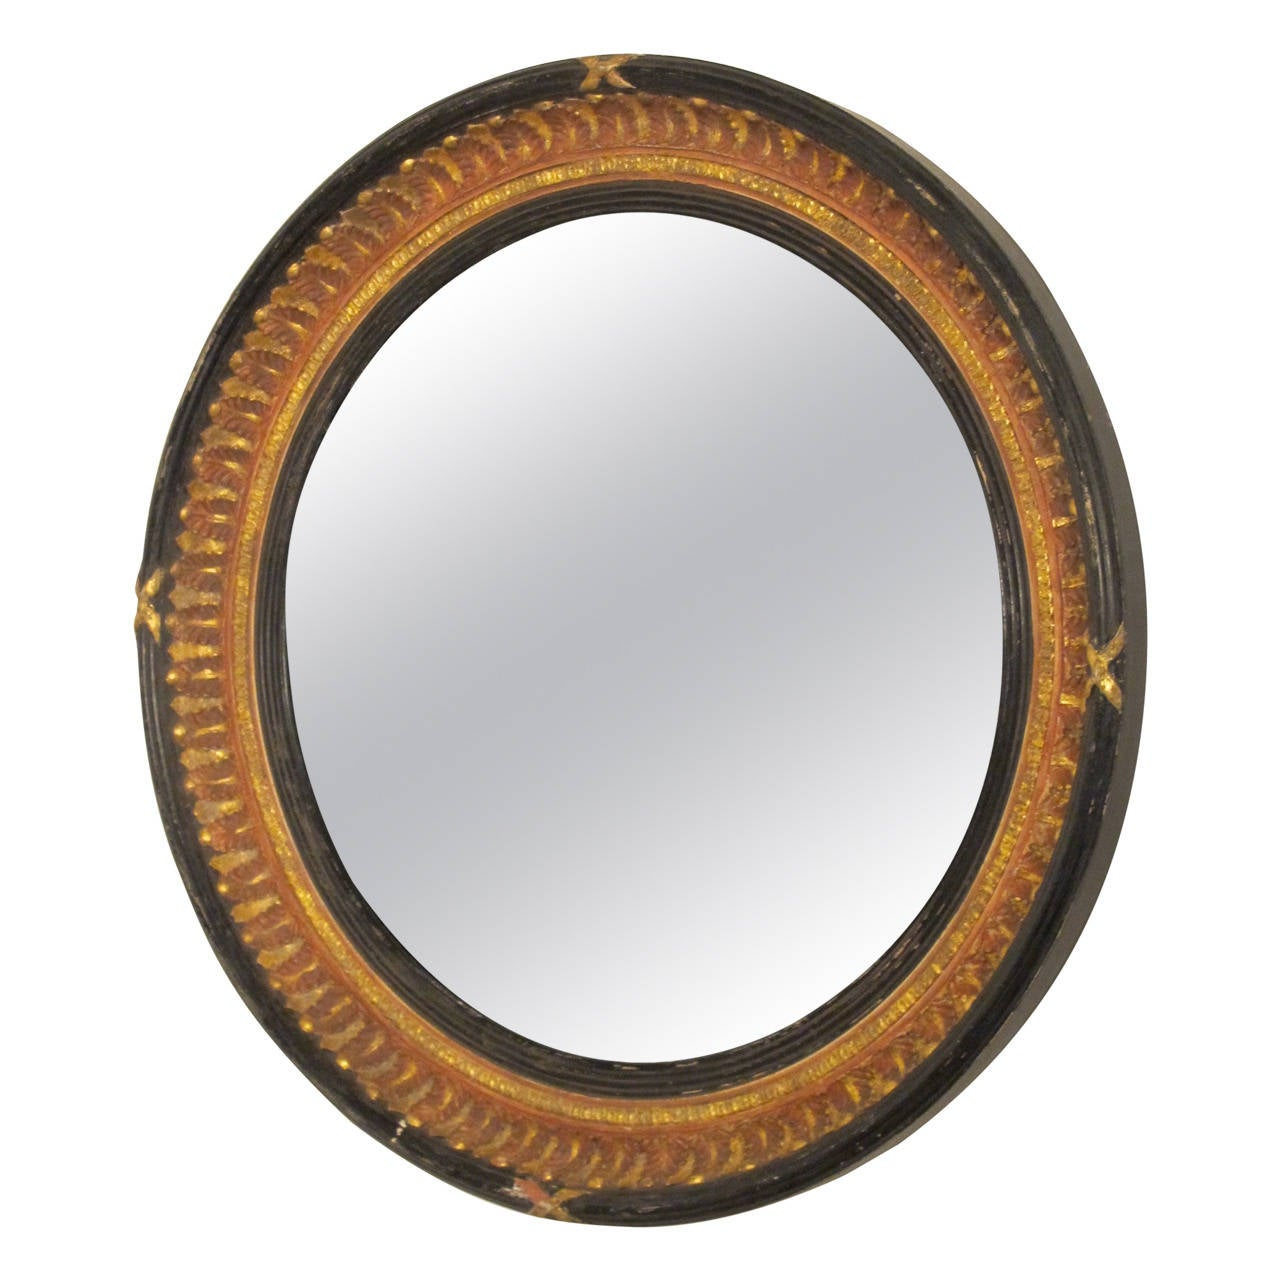 unusual english convex mirror for sale at 1stdibs